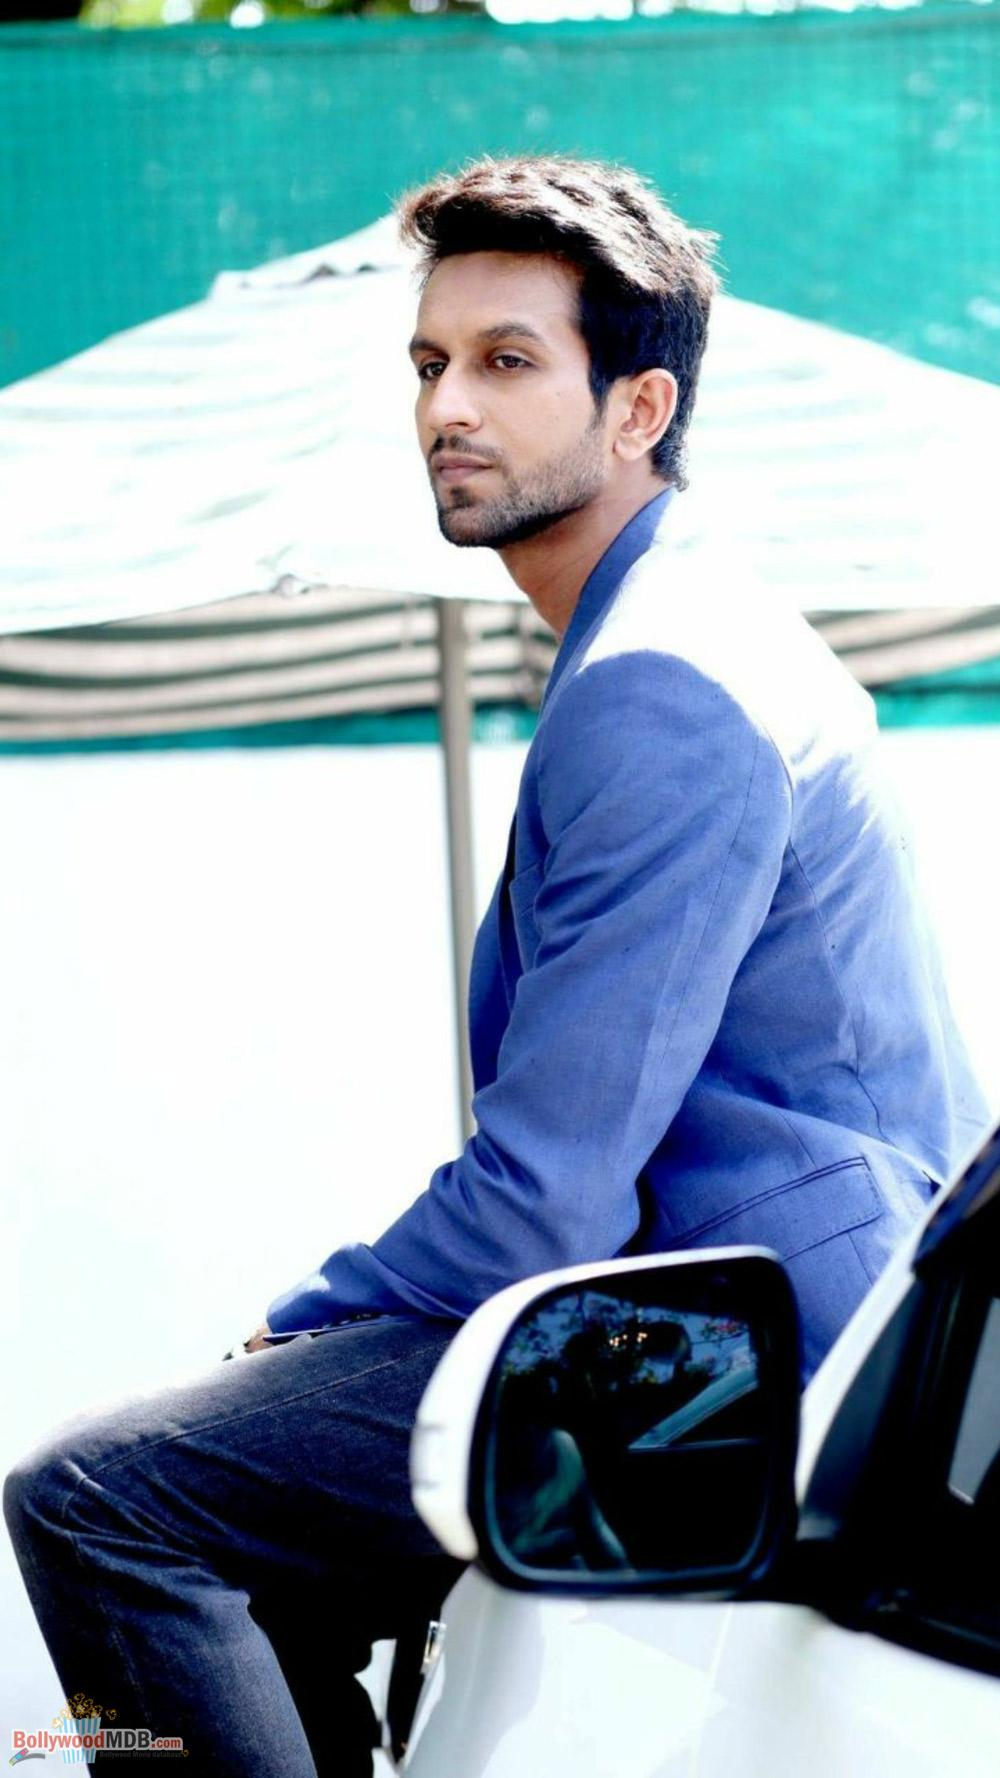 Mohit Madaan Interview: I prefer roles that are impactful and memorable!